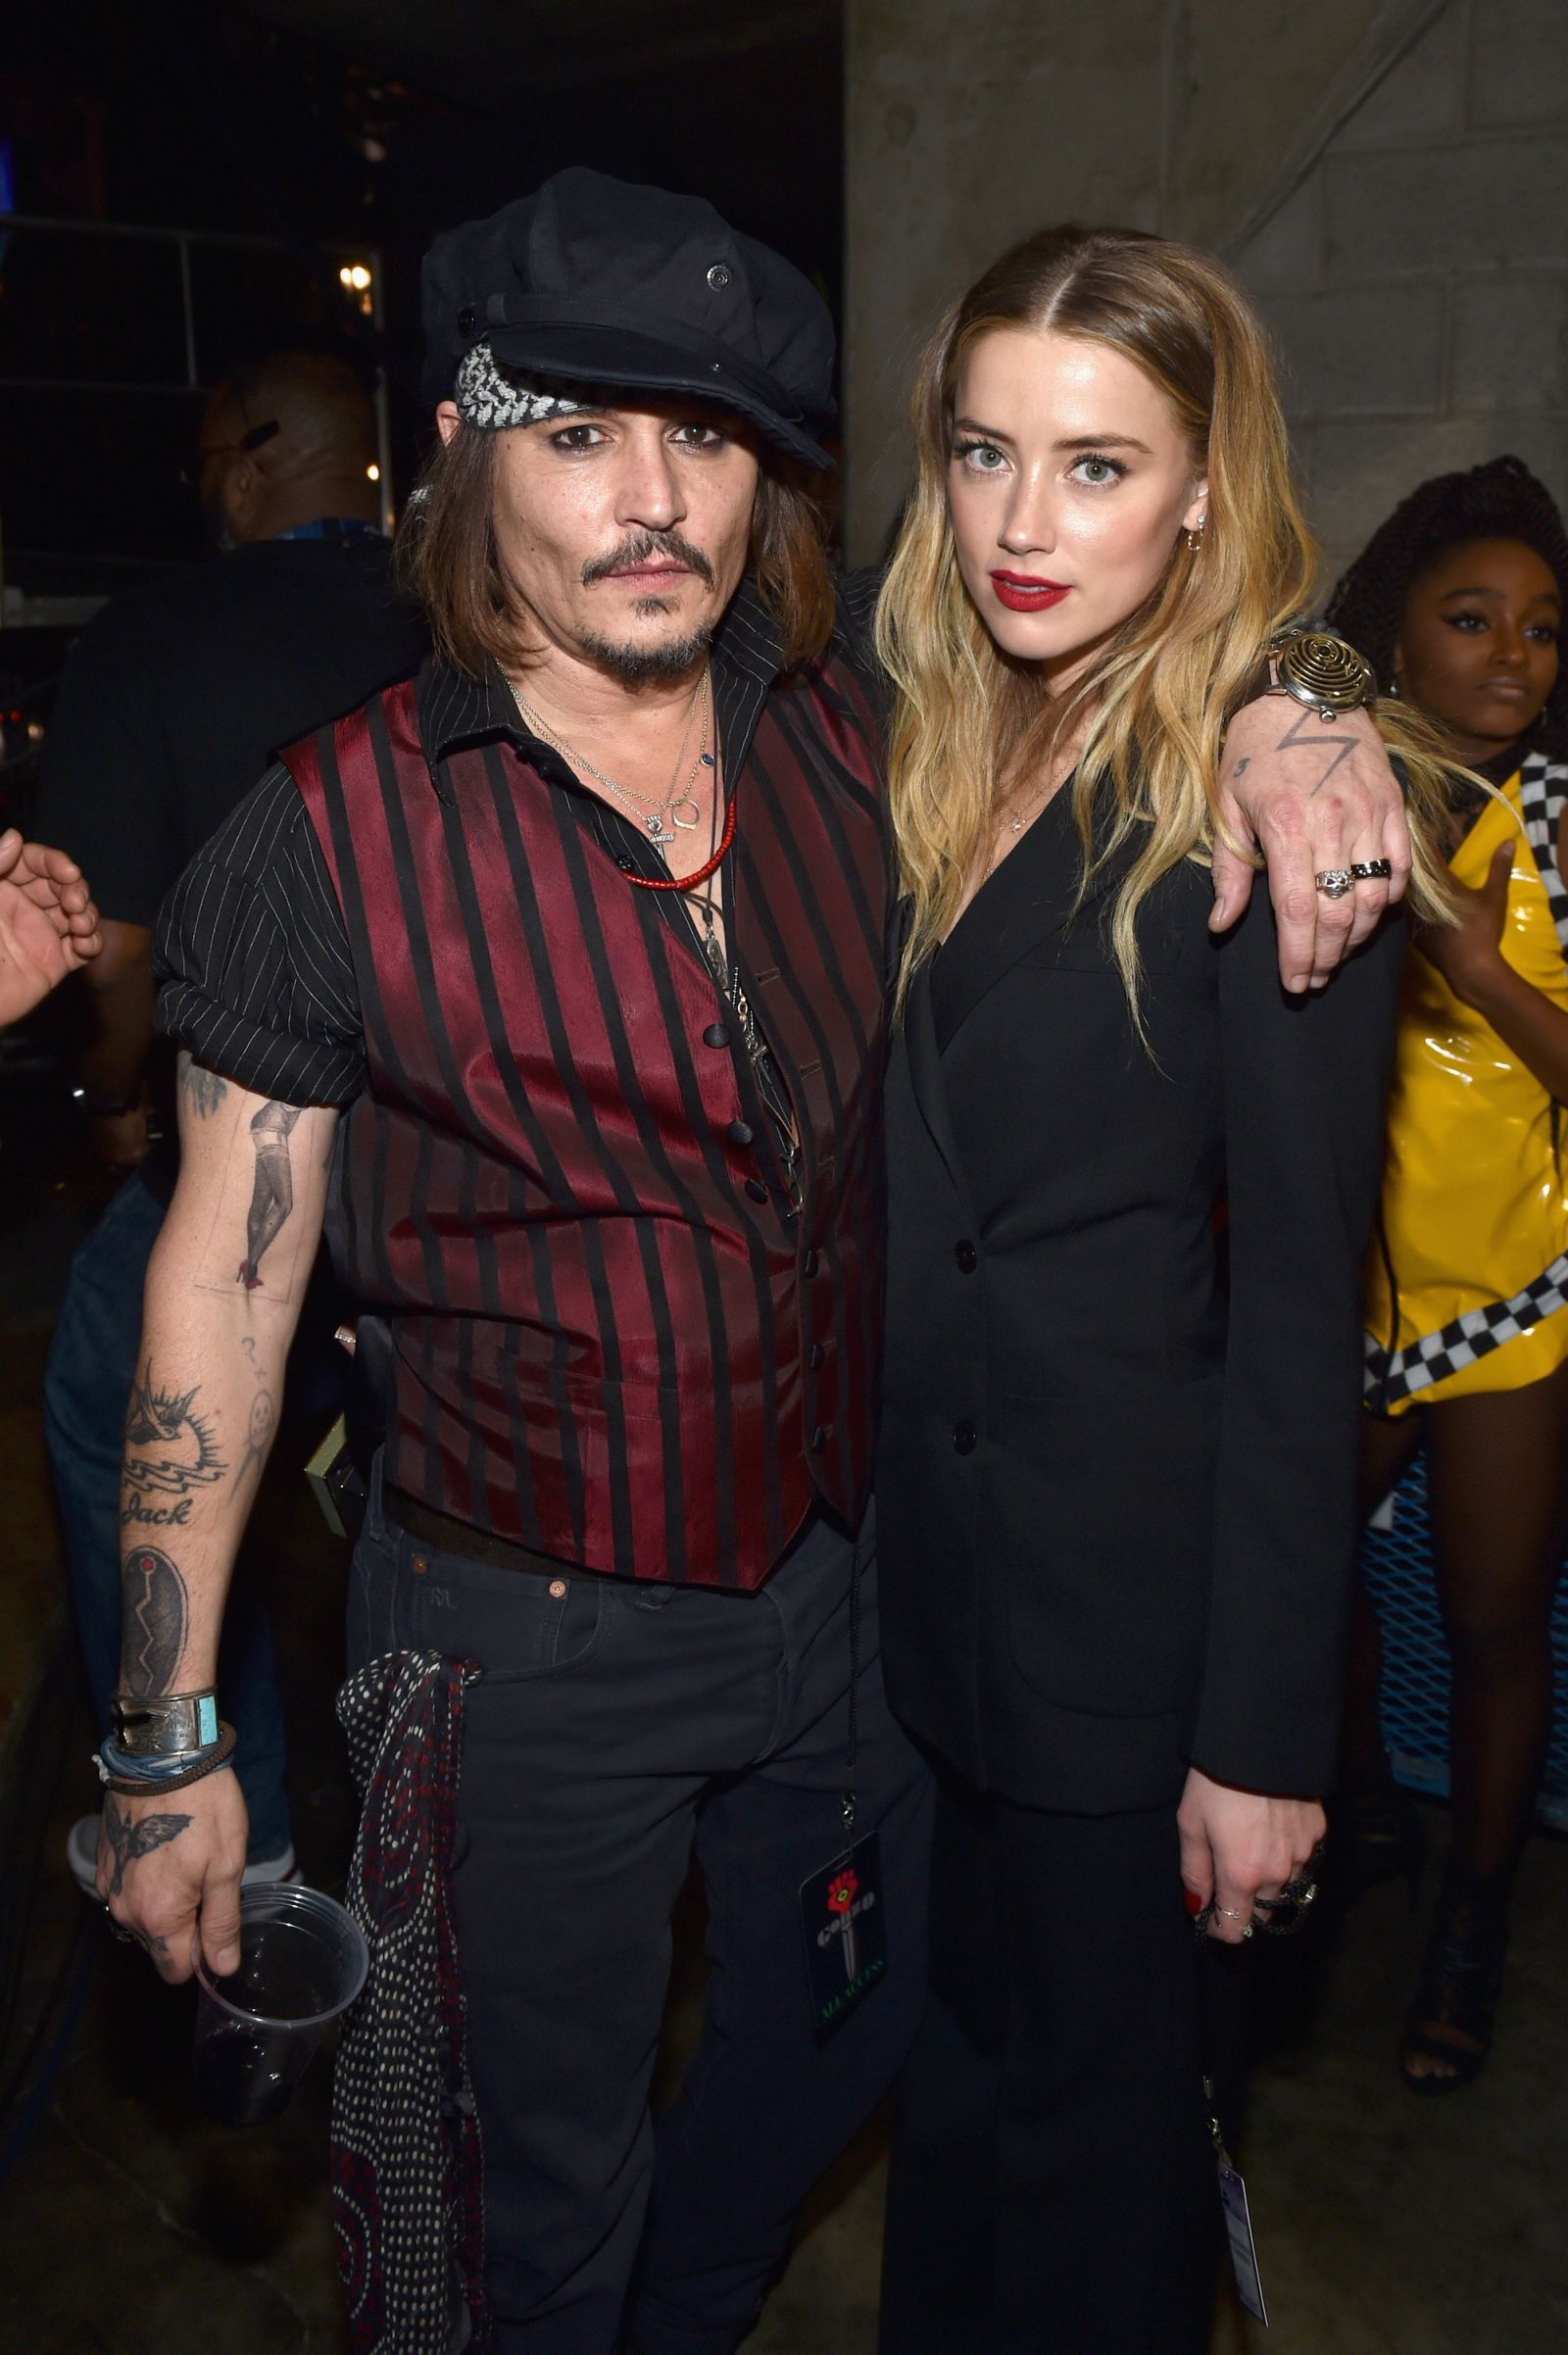 Johnny Depp & Amber Heard - 17 Celebrity Couples With Big Age Differences